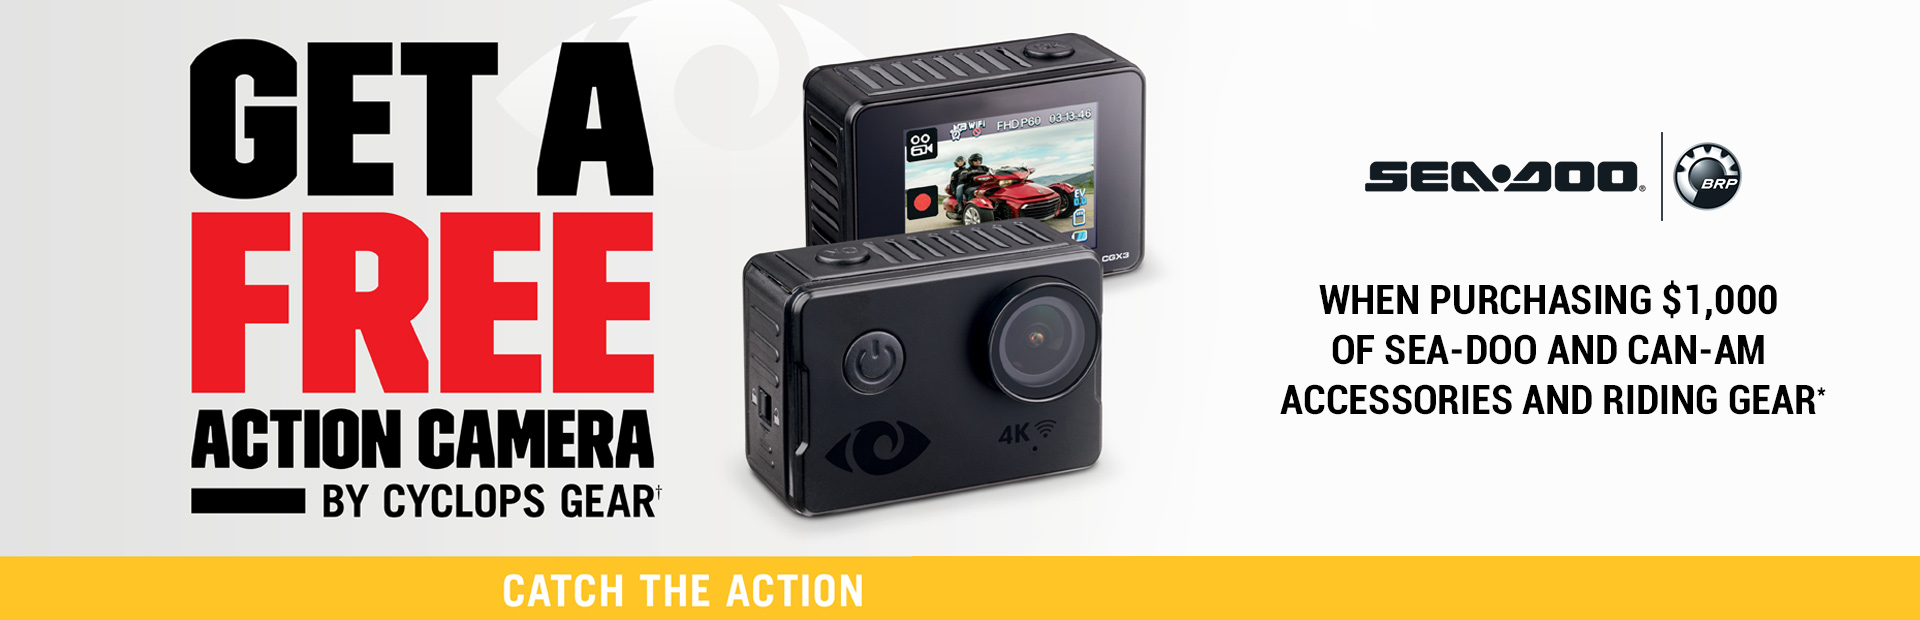 Sea-Doo: Action Camera Promotion